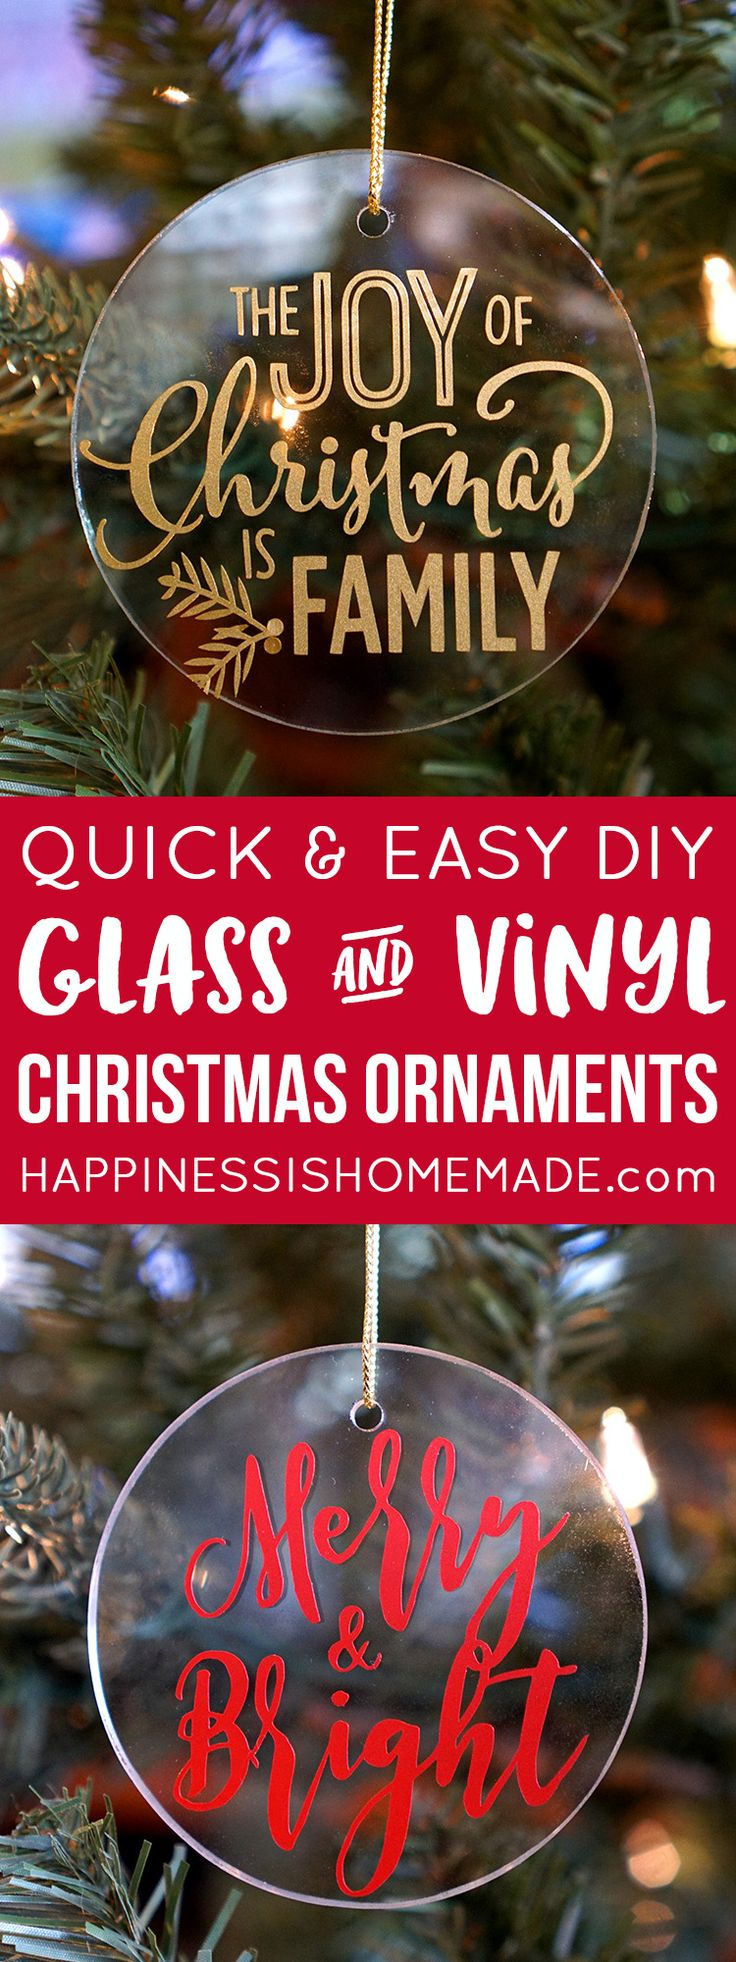 These glass and vinyl Christmas ornaments are SO quick and easy to make, and they make a great homemade gift idea for friends, family, teachers, and more!